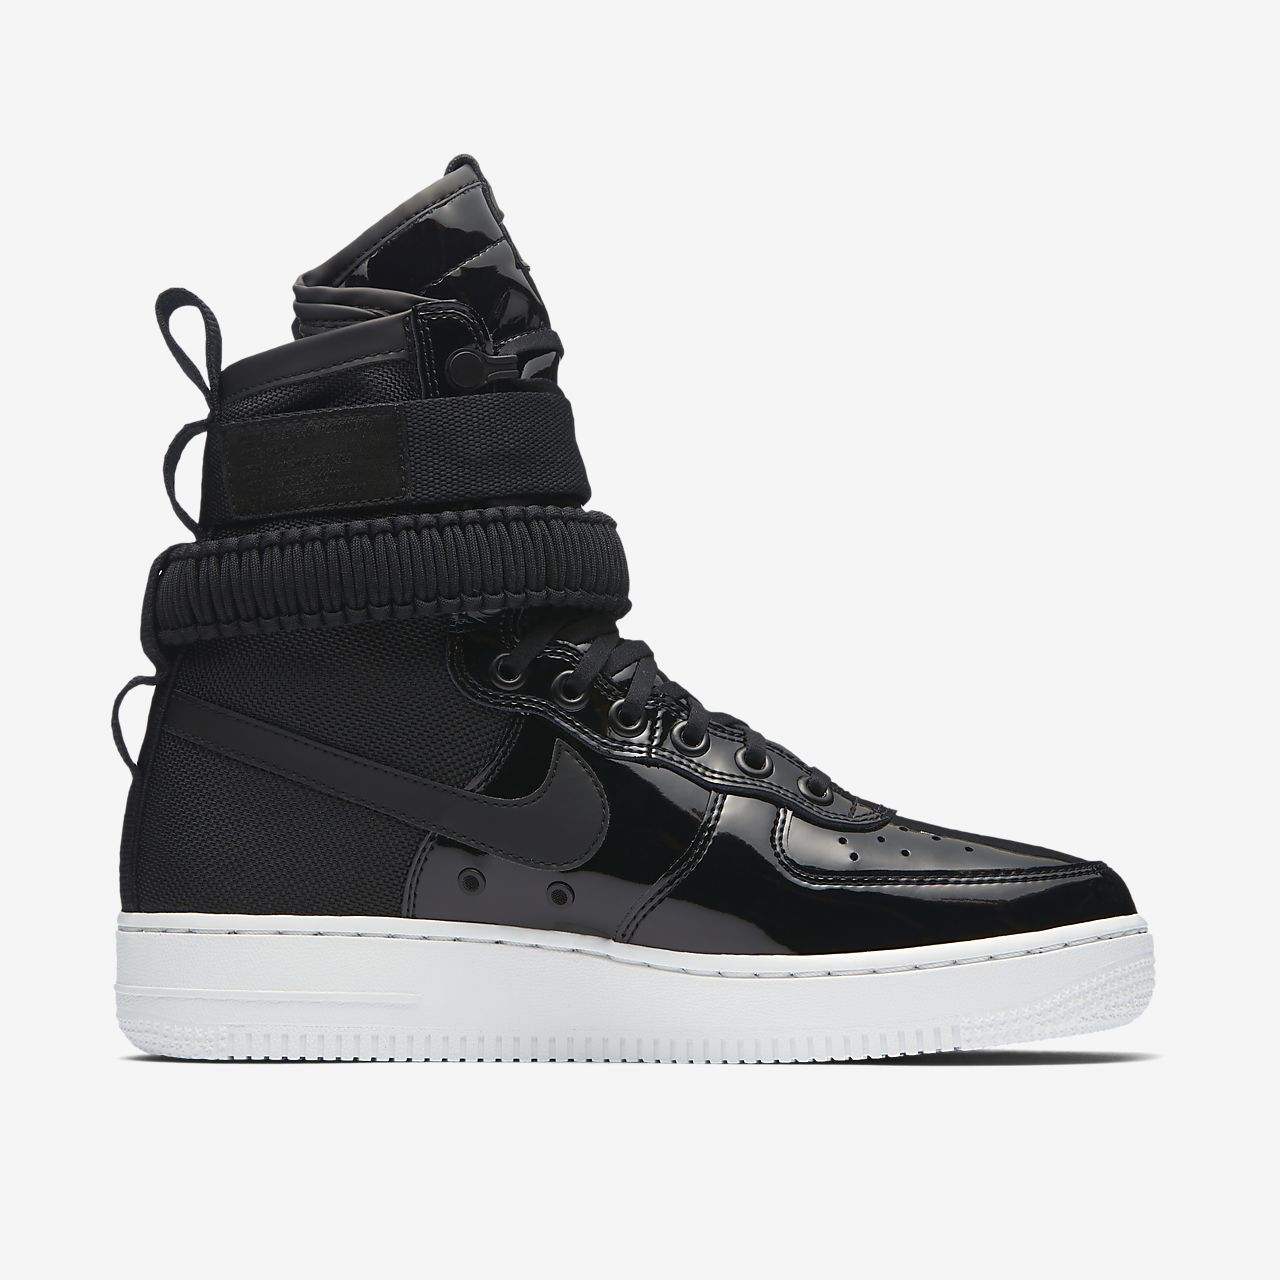 nike air force 1 sf mid nz